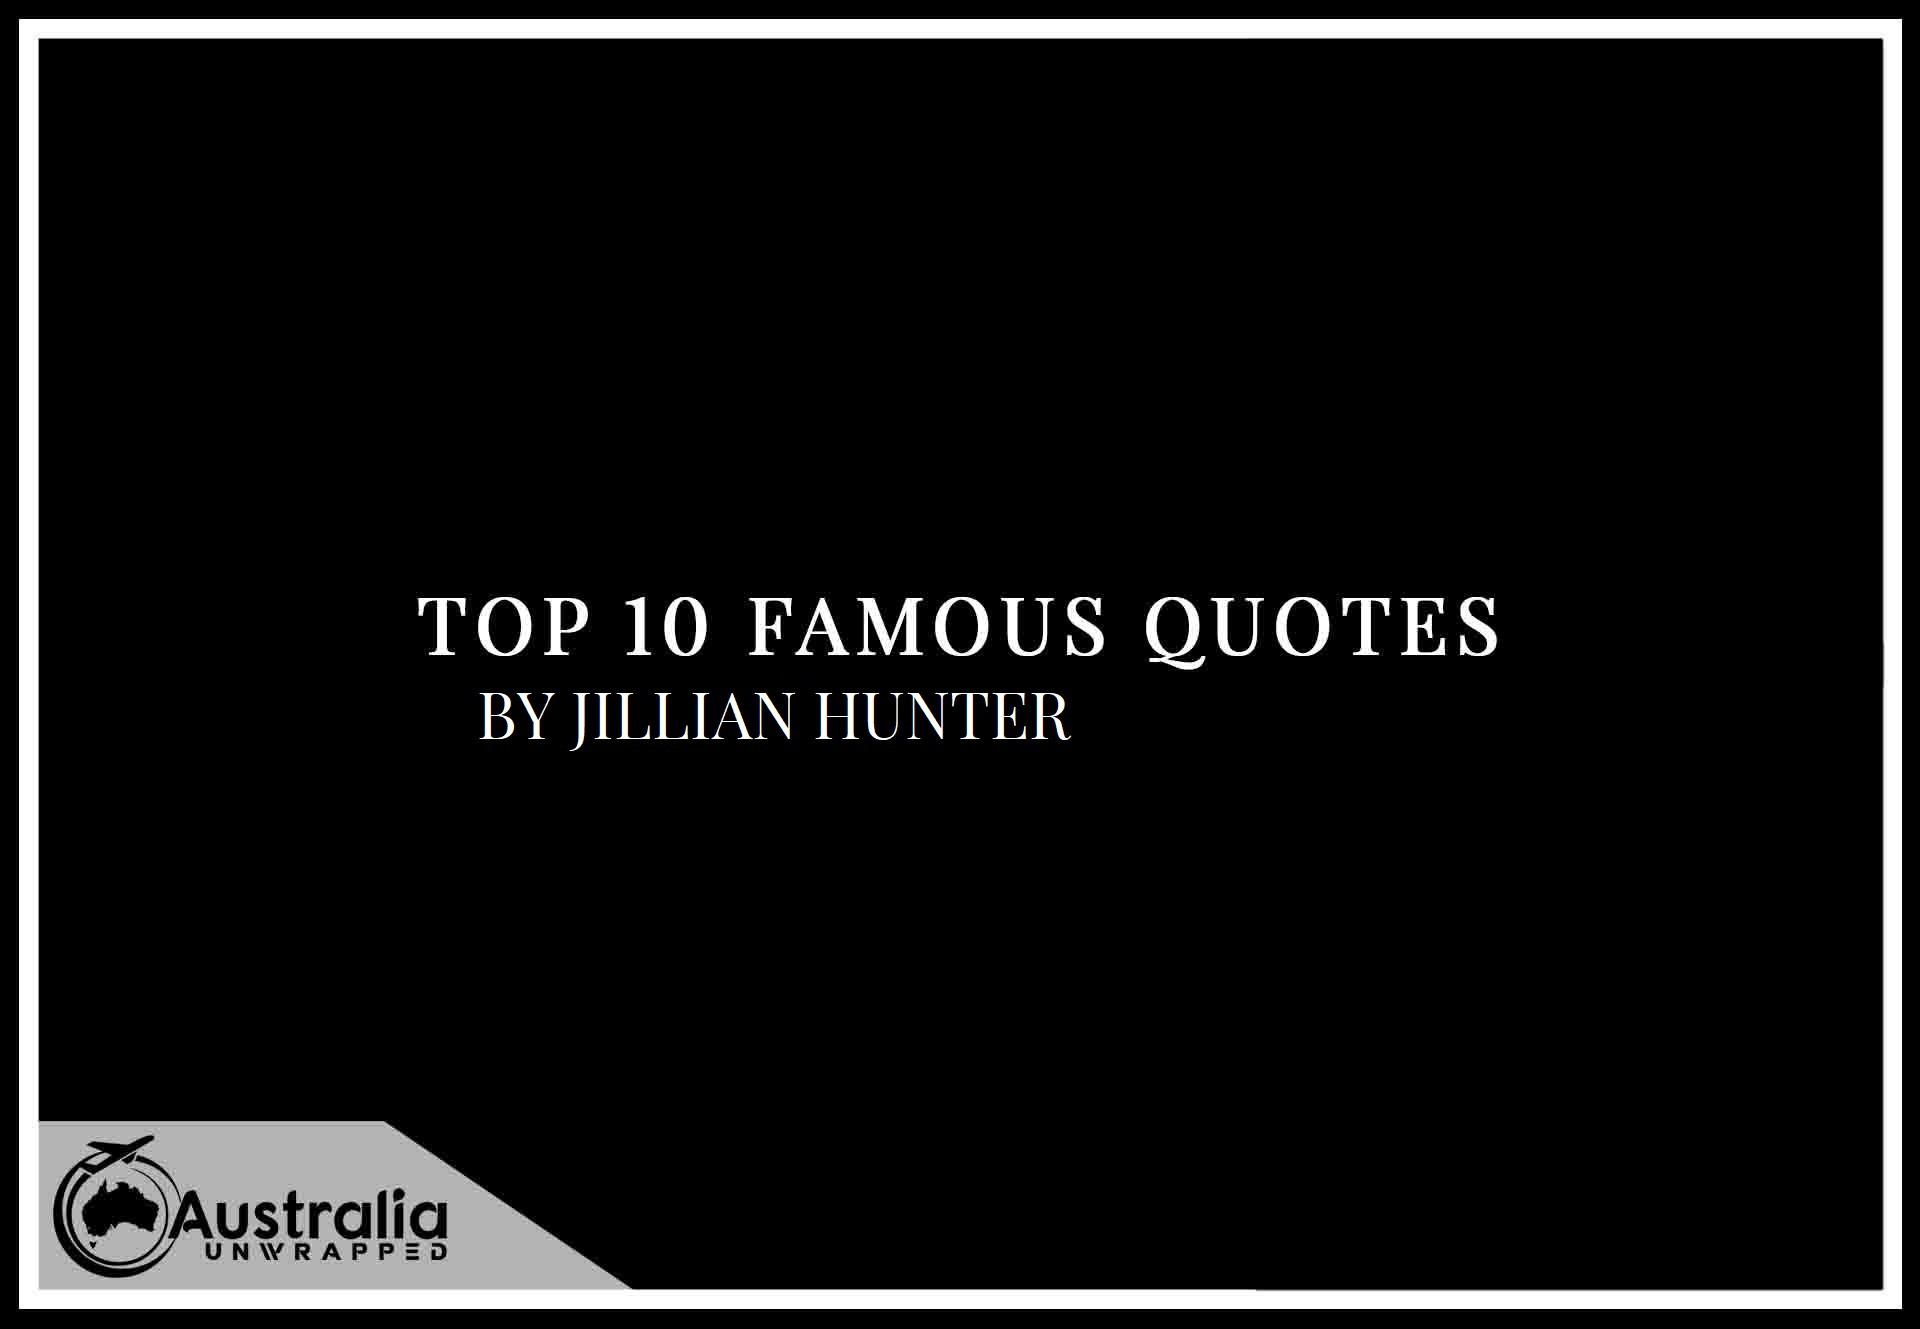 Top 10 Famous Quotes by Author Jillian Hunter